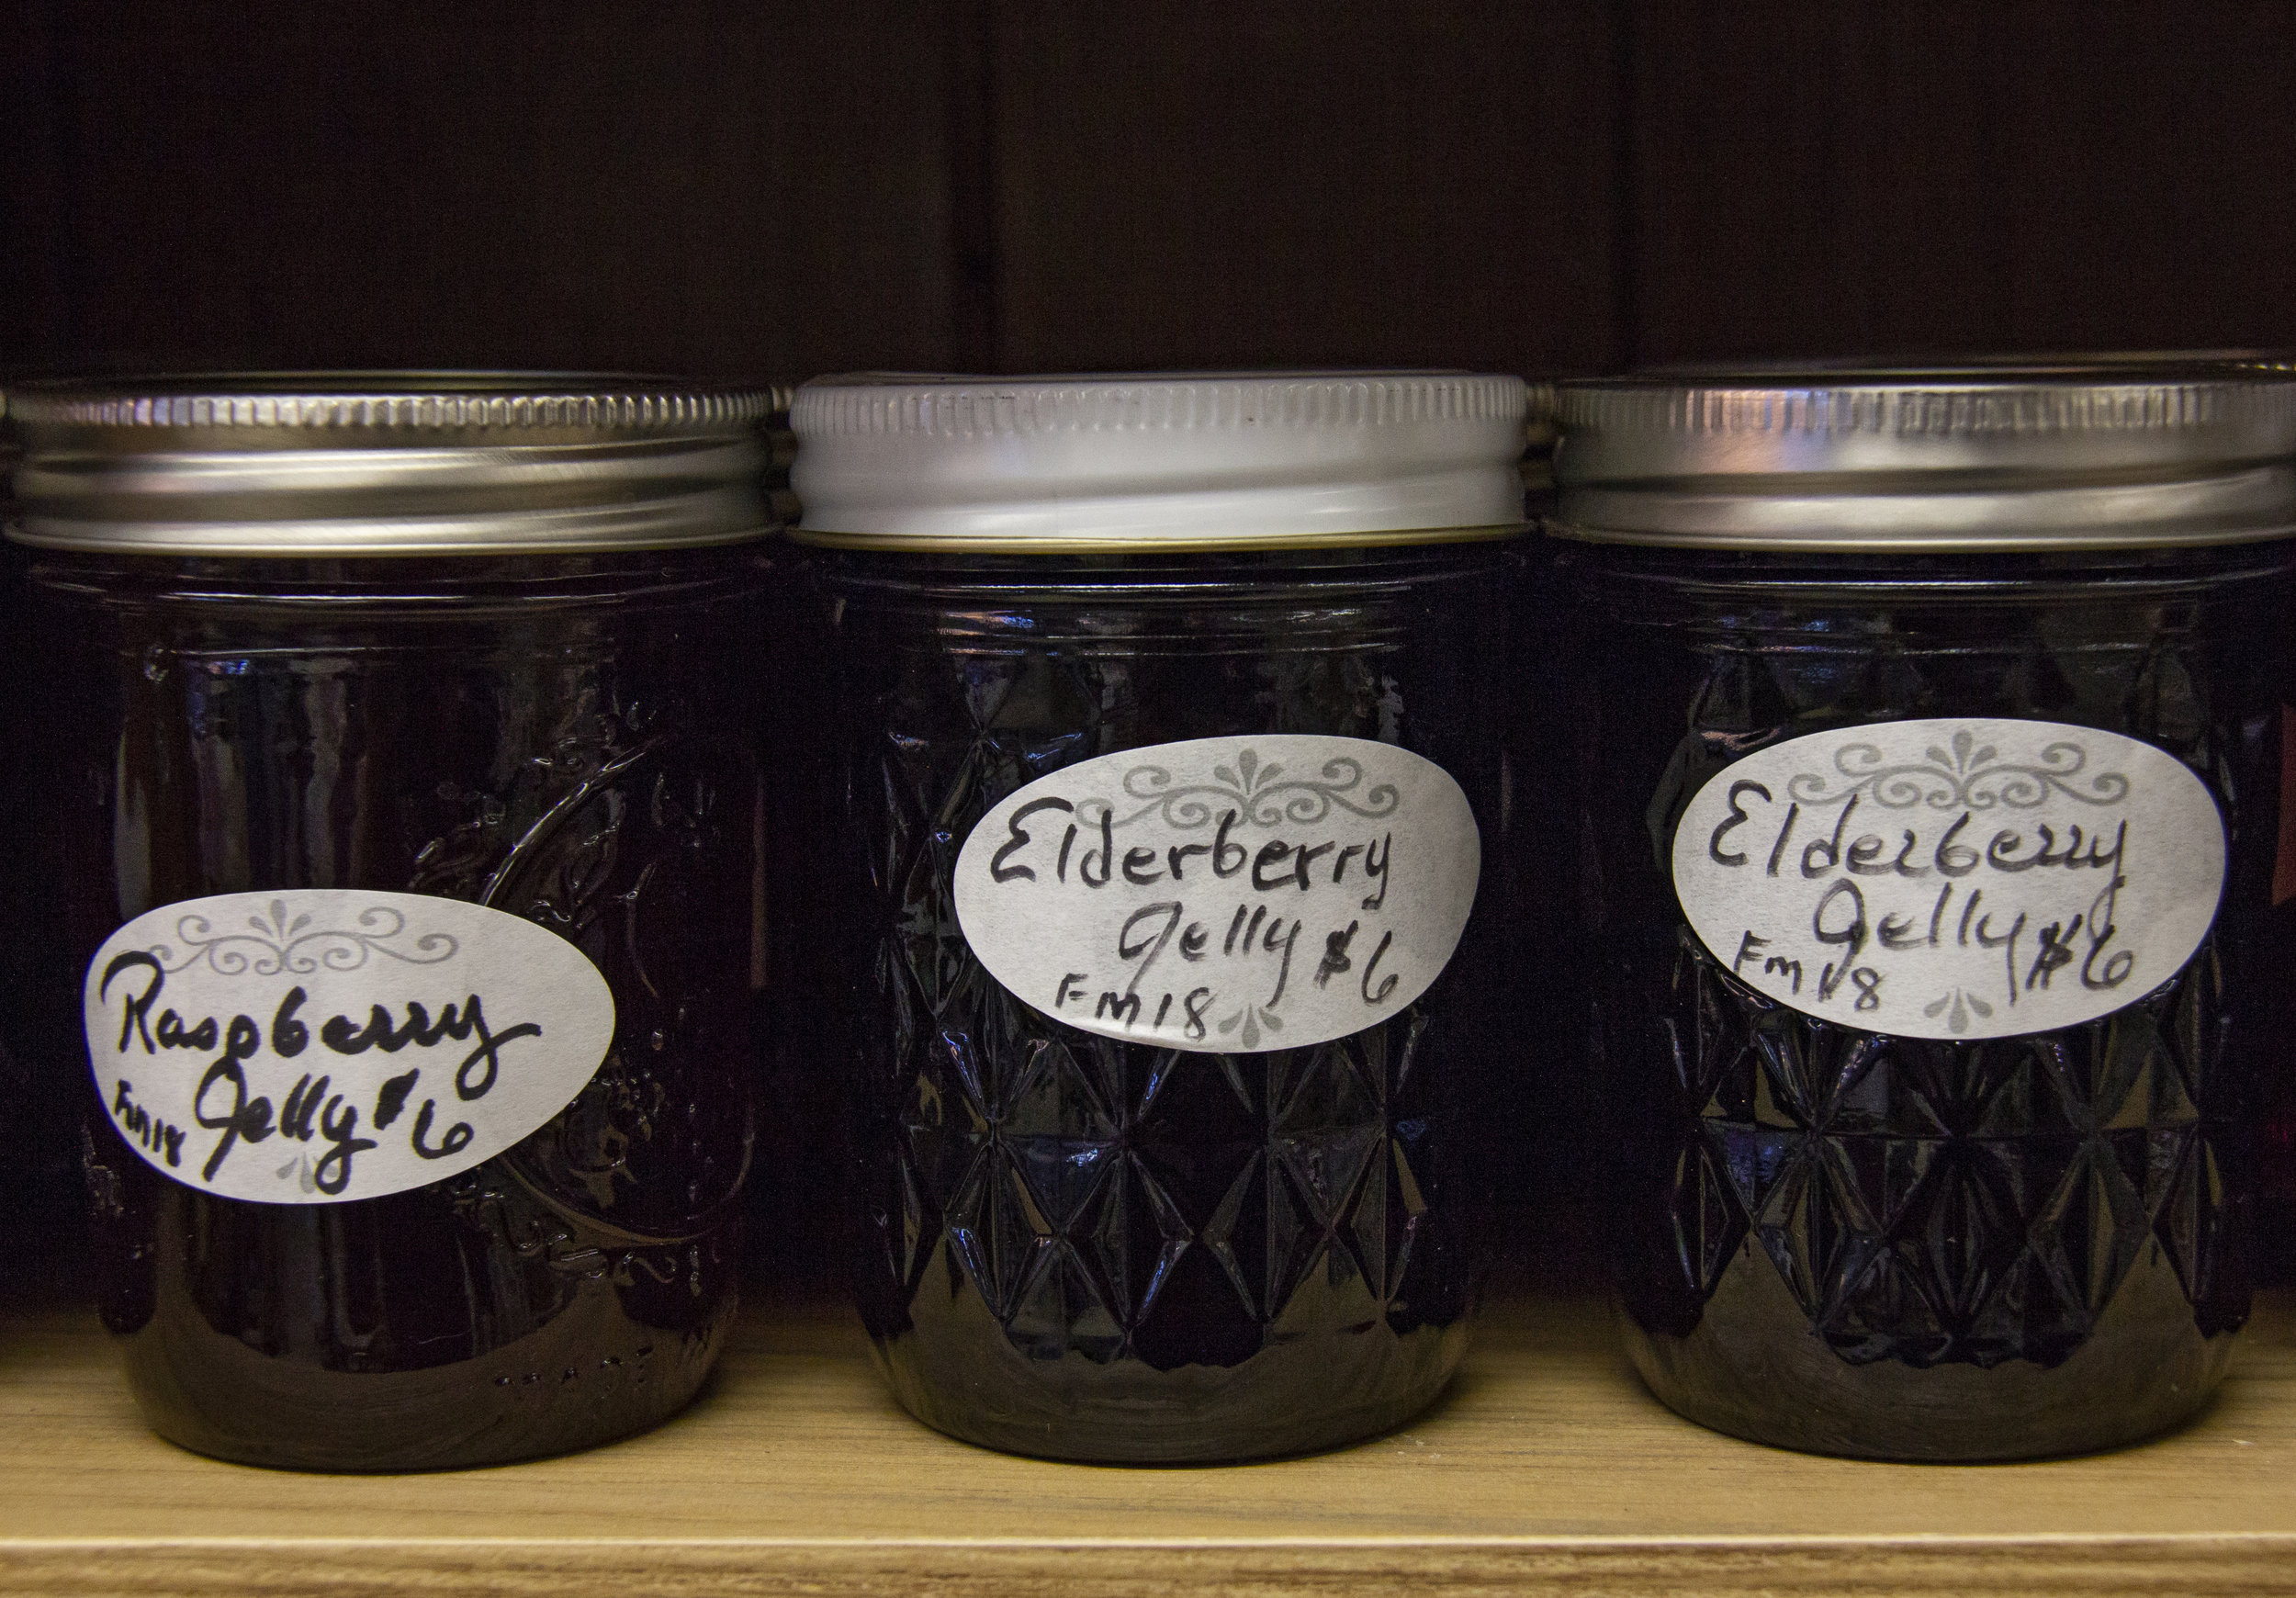 Raspberry and elderberry jelly available at the Downtown Gillette Farmers' Market, a cooperatively owned market in Gillette.